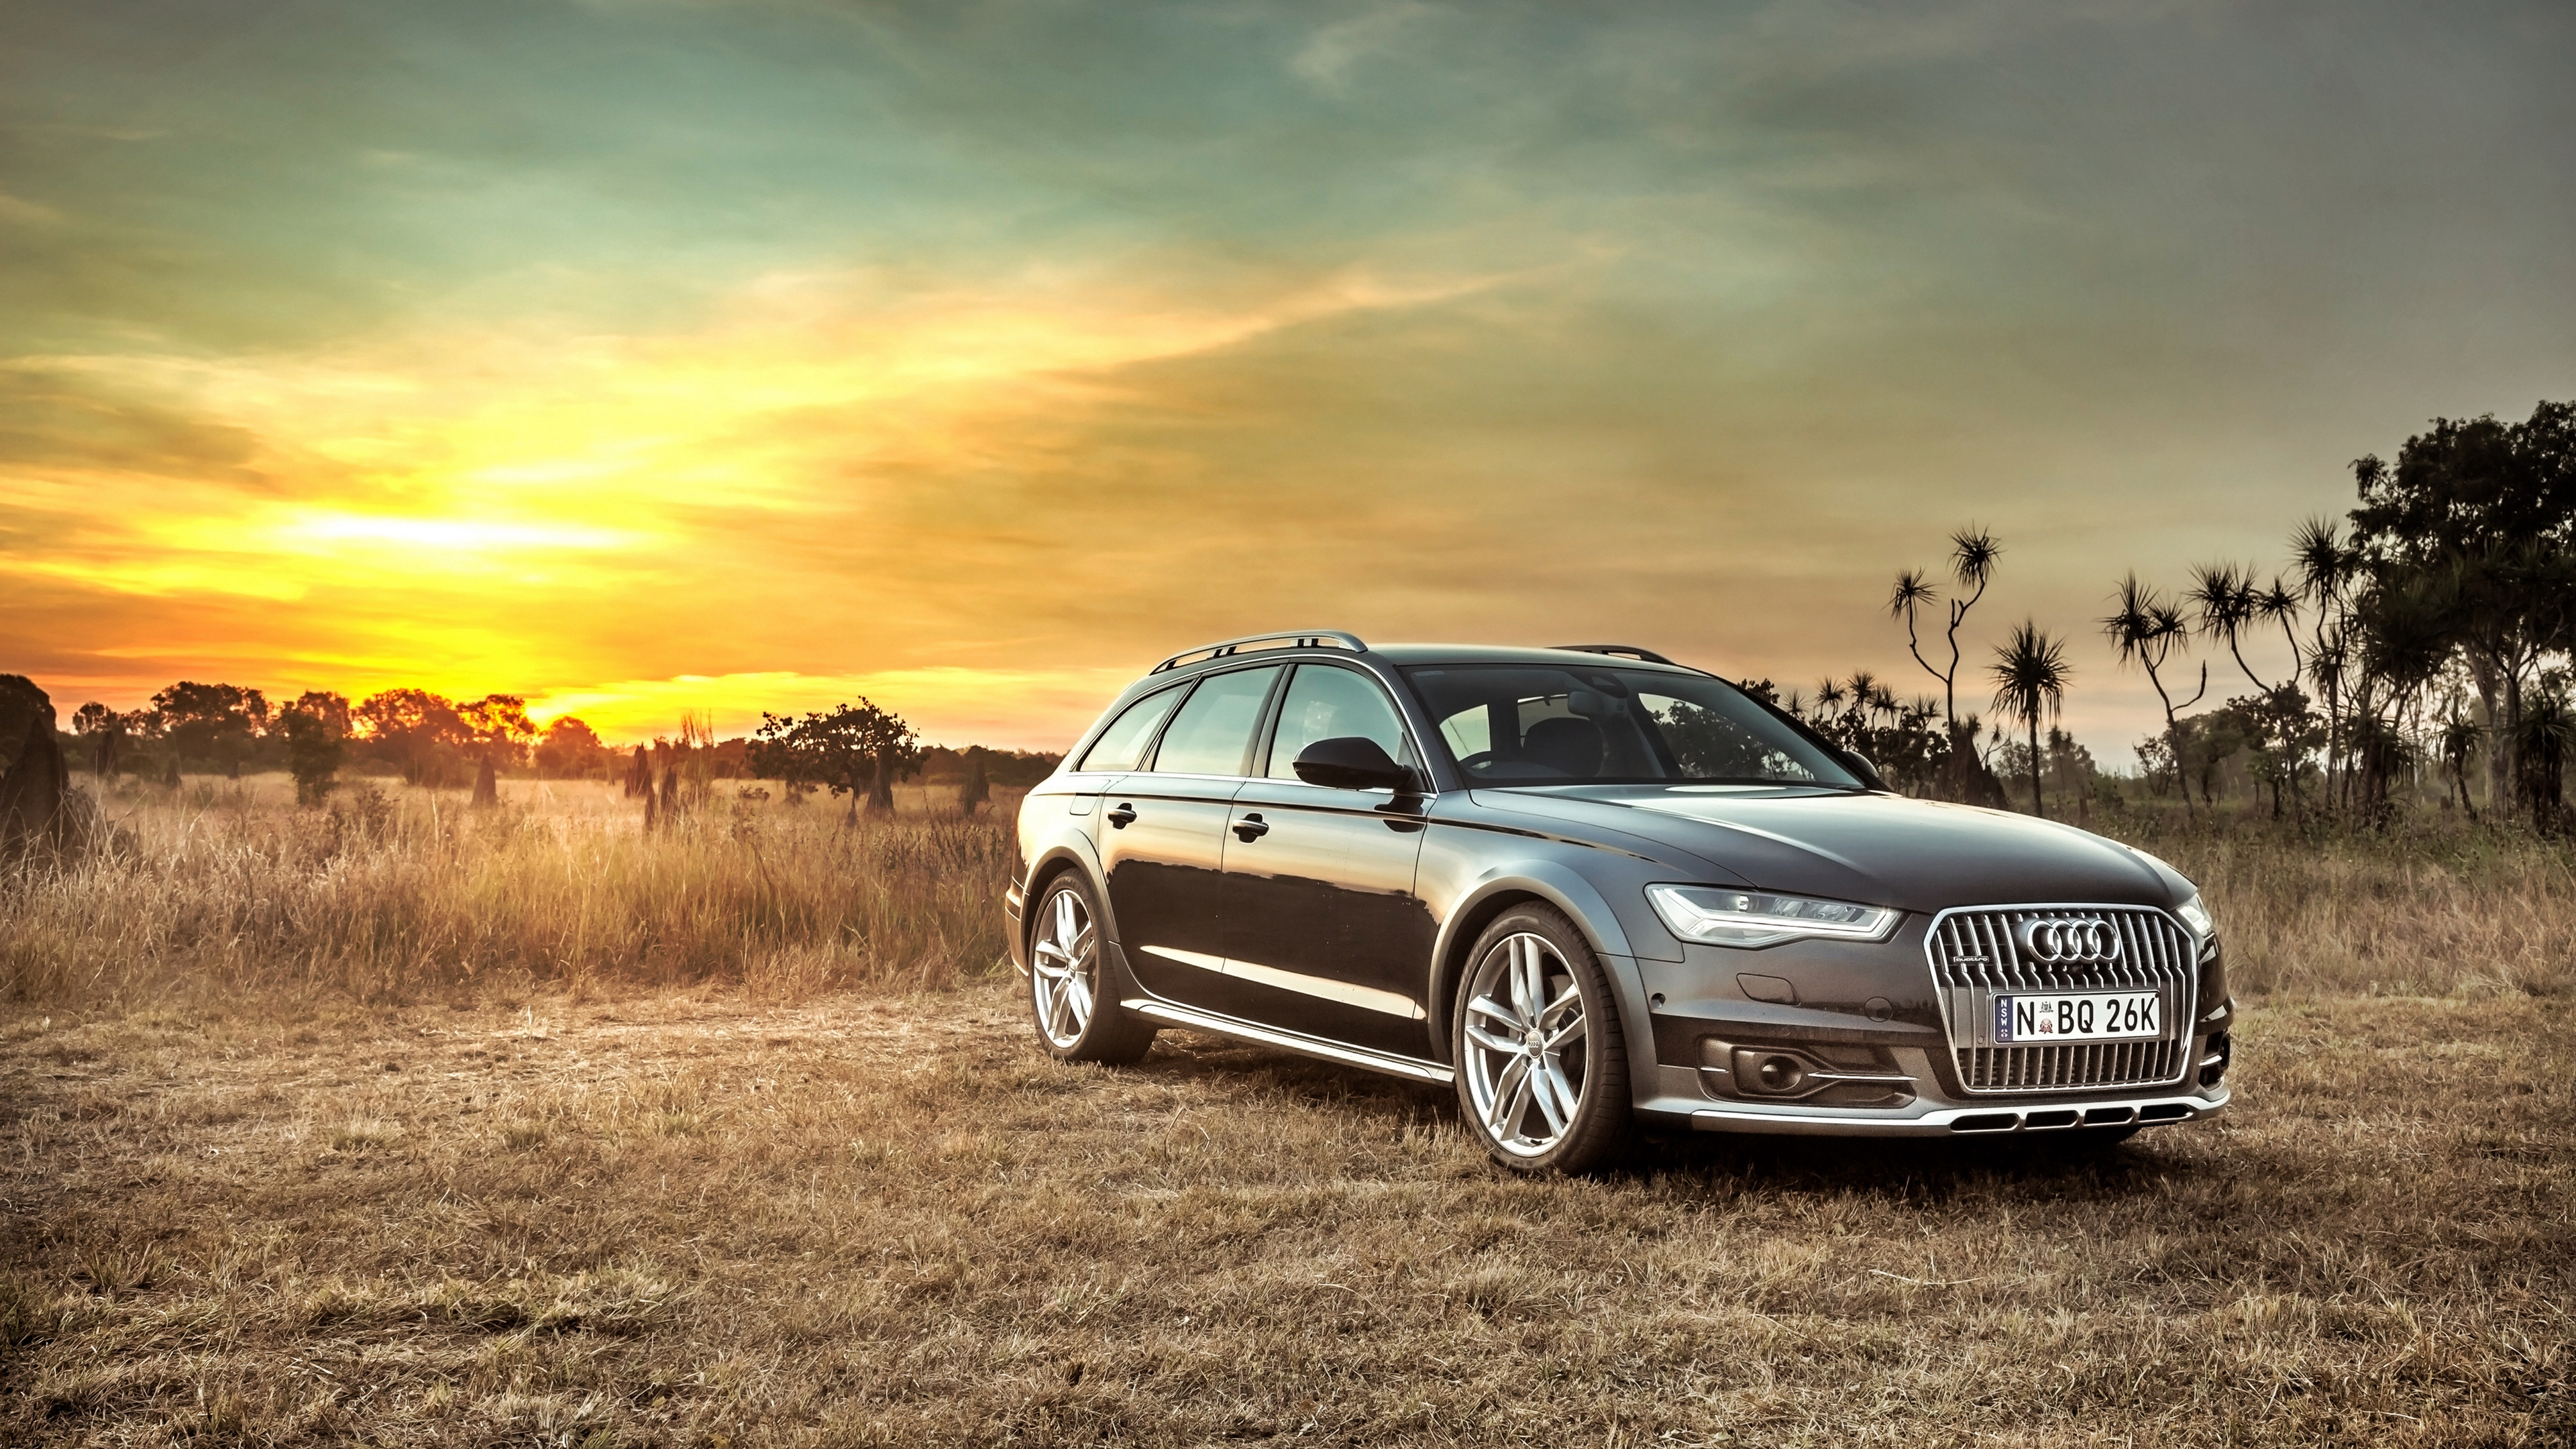 audi a6 allroad side view hdr 4k 1538935193 - audi, a6, allroad, side view, hdr 4k - Audi, allroad, a6